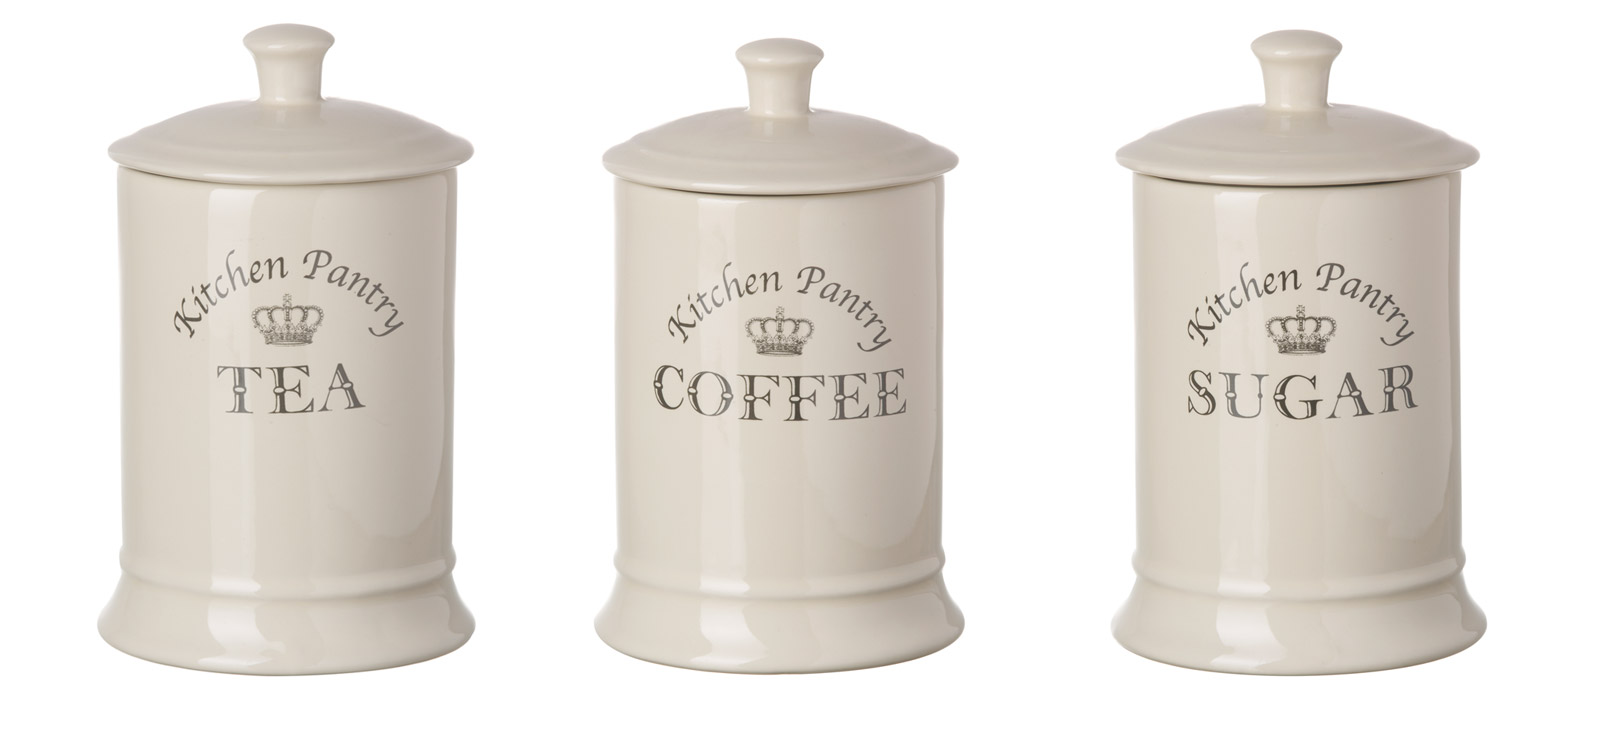 Details about majestic cream tea coffee sugar canisters set kitchen storage jar vintage royal